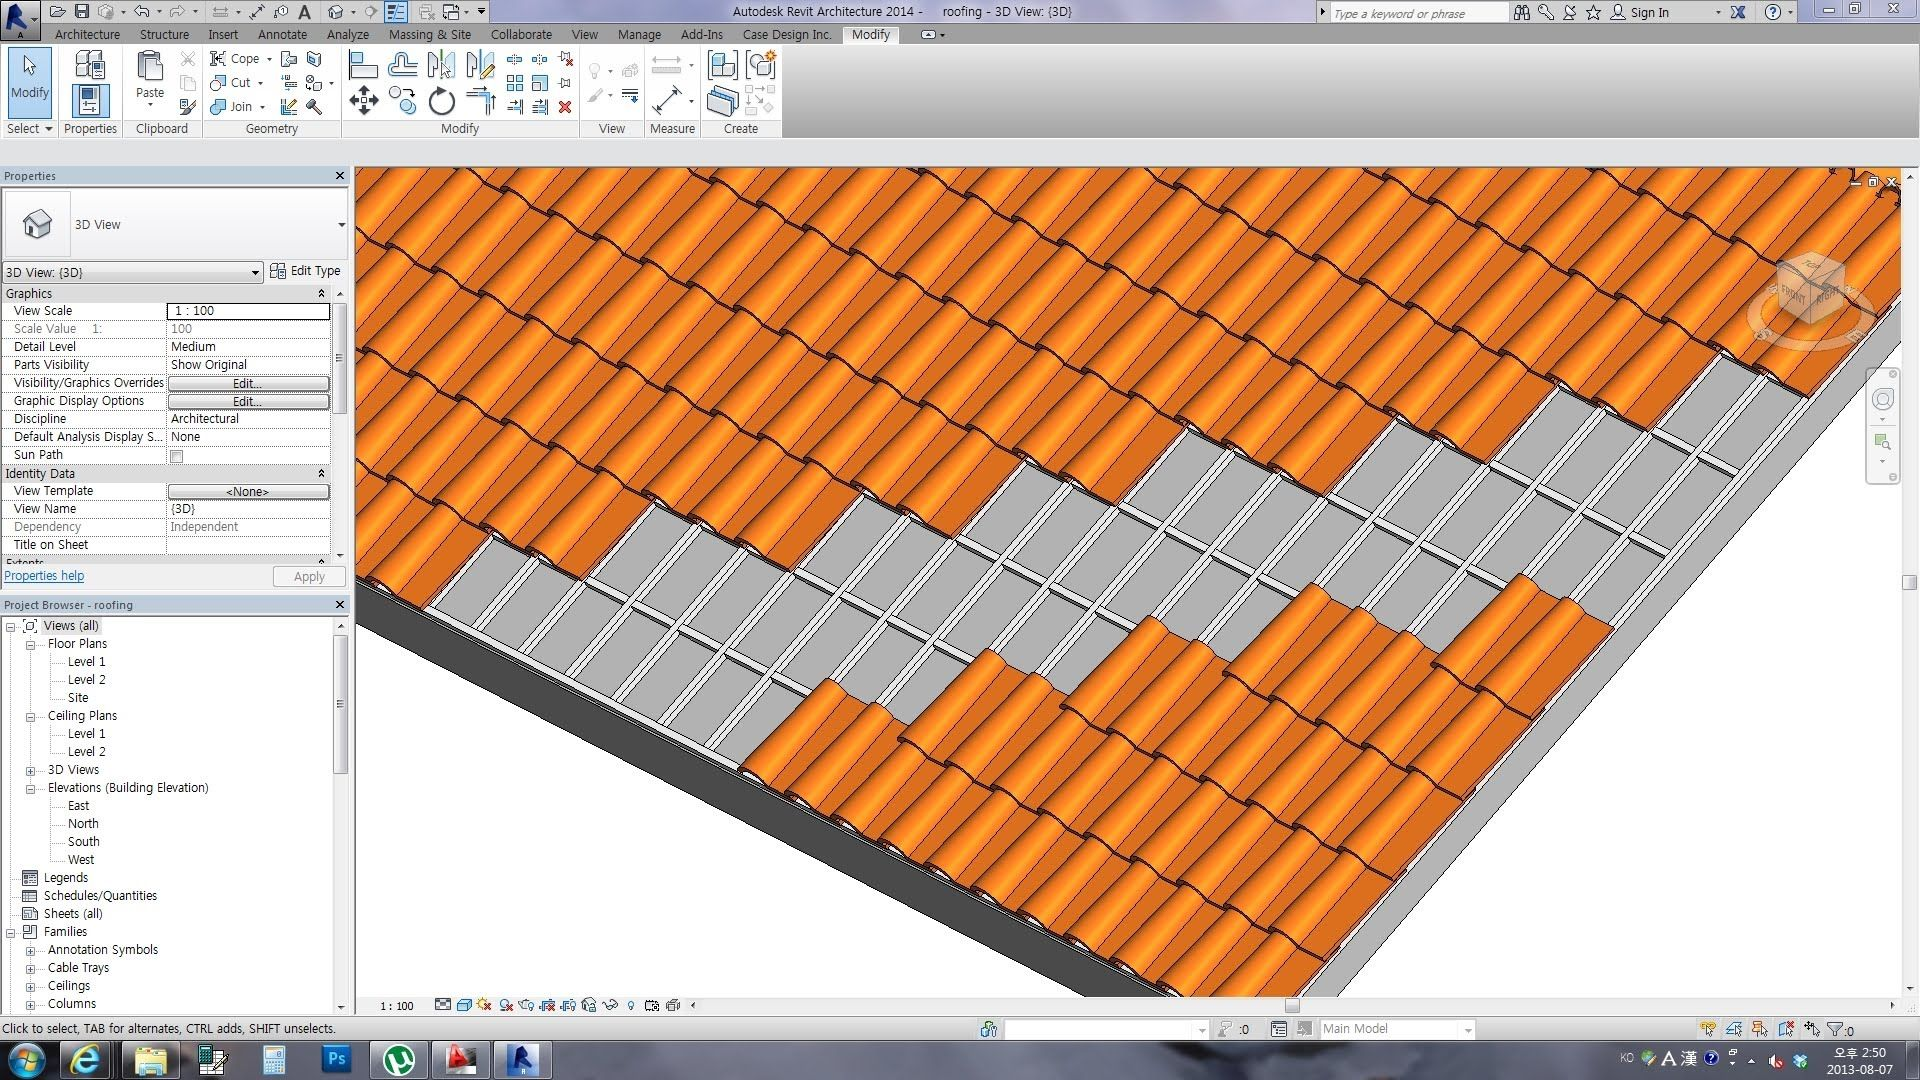 Http Plevit1 Blogspot Kr 2013 08 Spanish Roof Tile Html If You Want Better Visual You Can Make It Enjoy Revit Tutorial Roof Tiles Roof